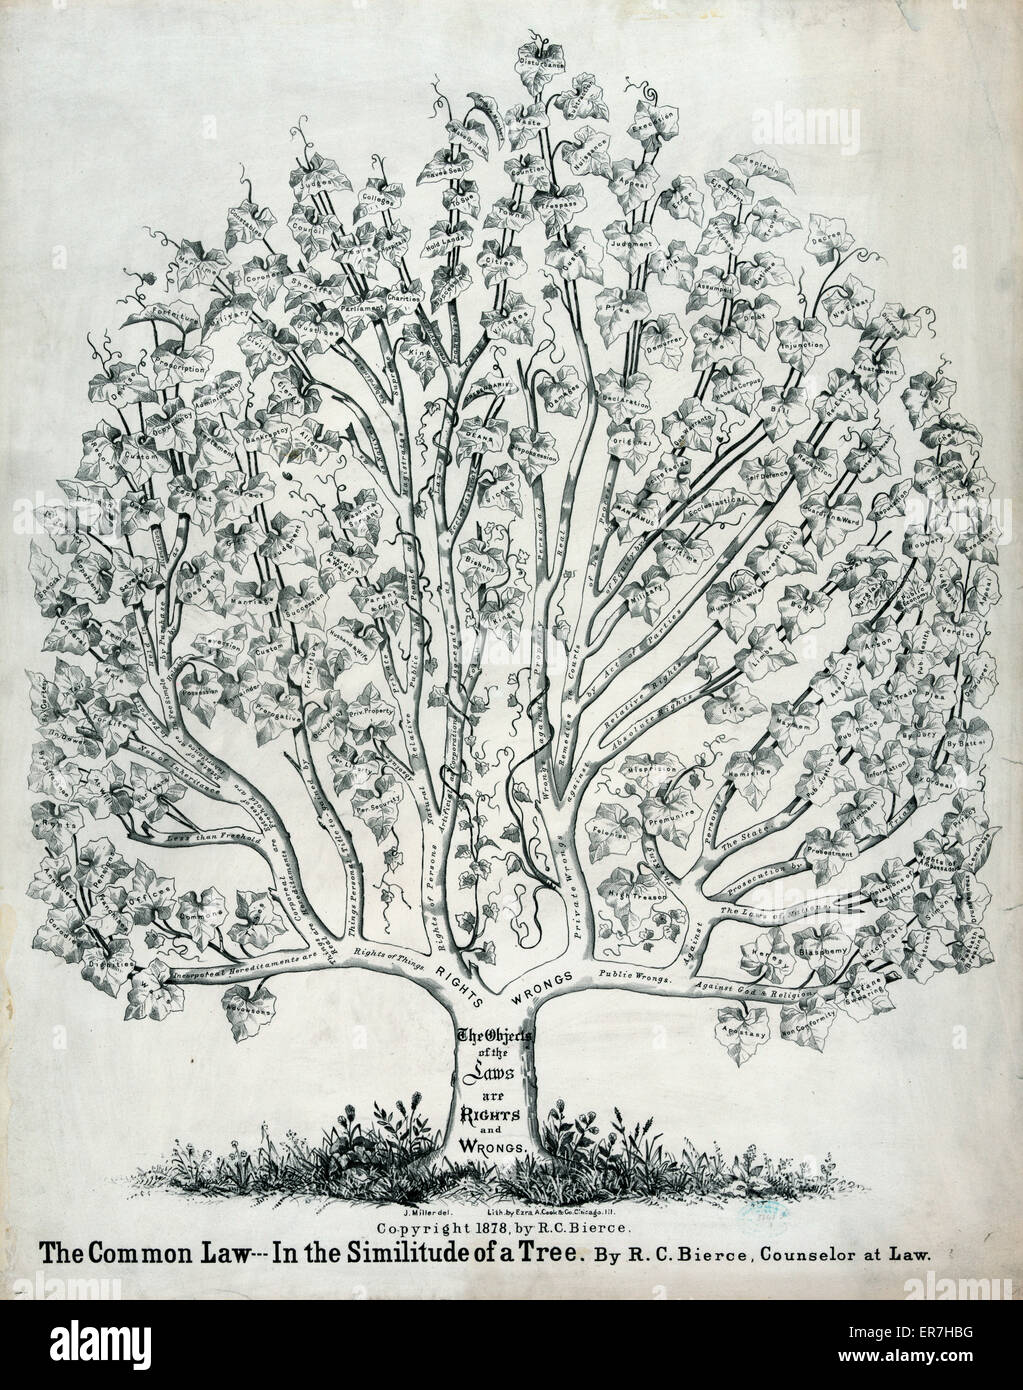 The common law in the similitude of a tree. Date c1878. - Stock Image